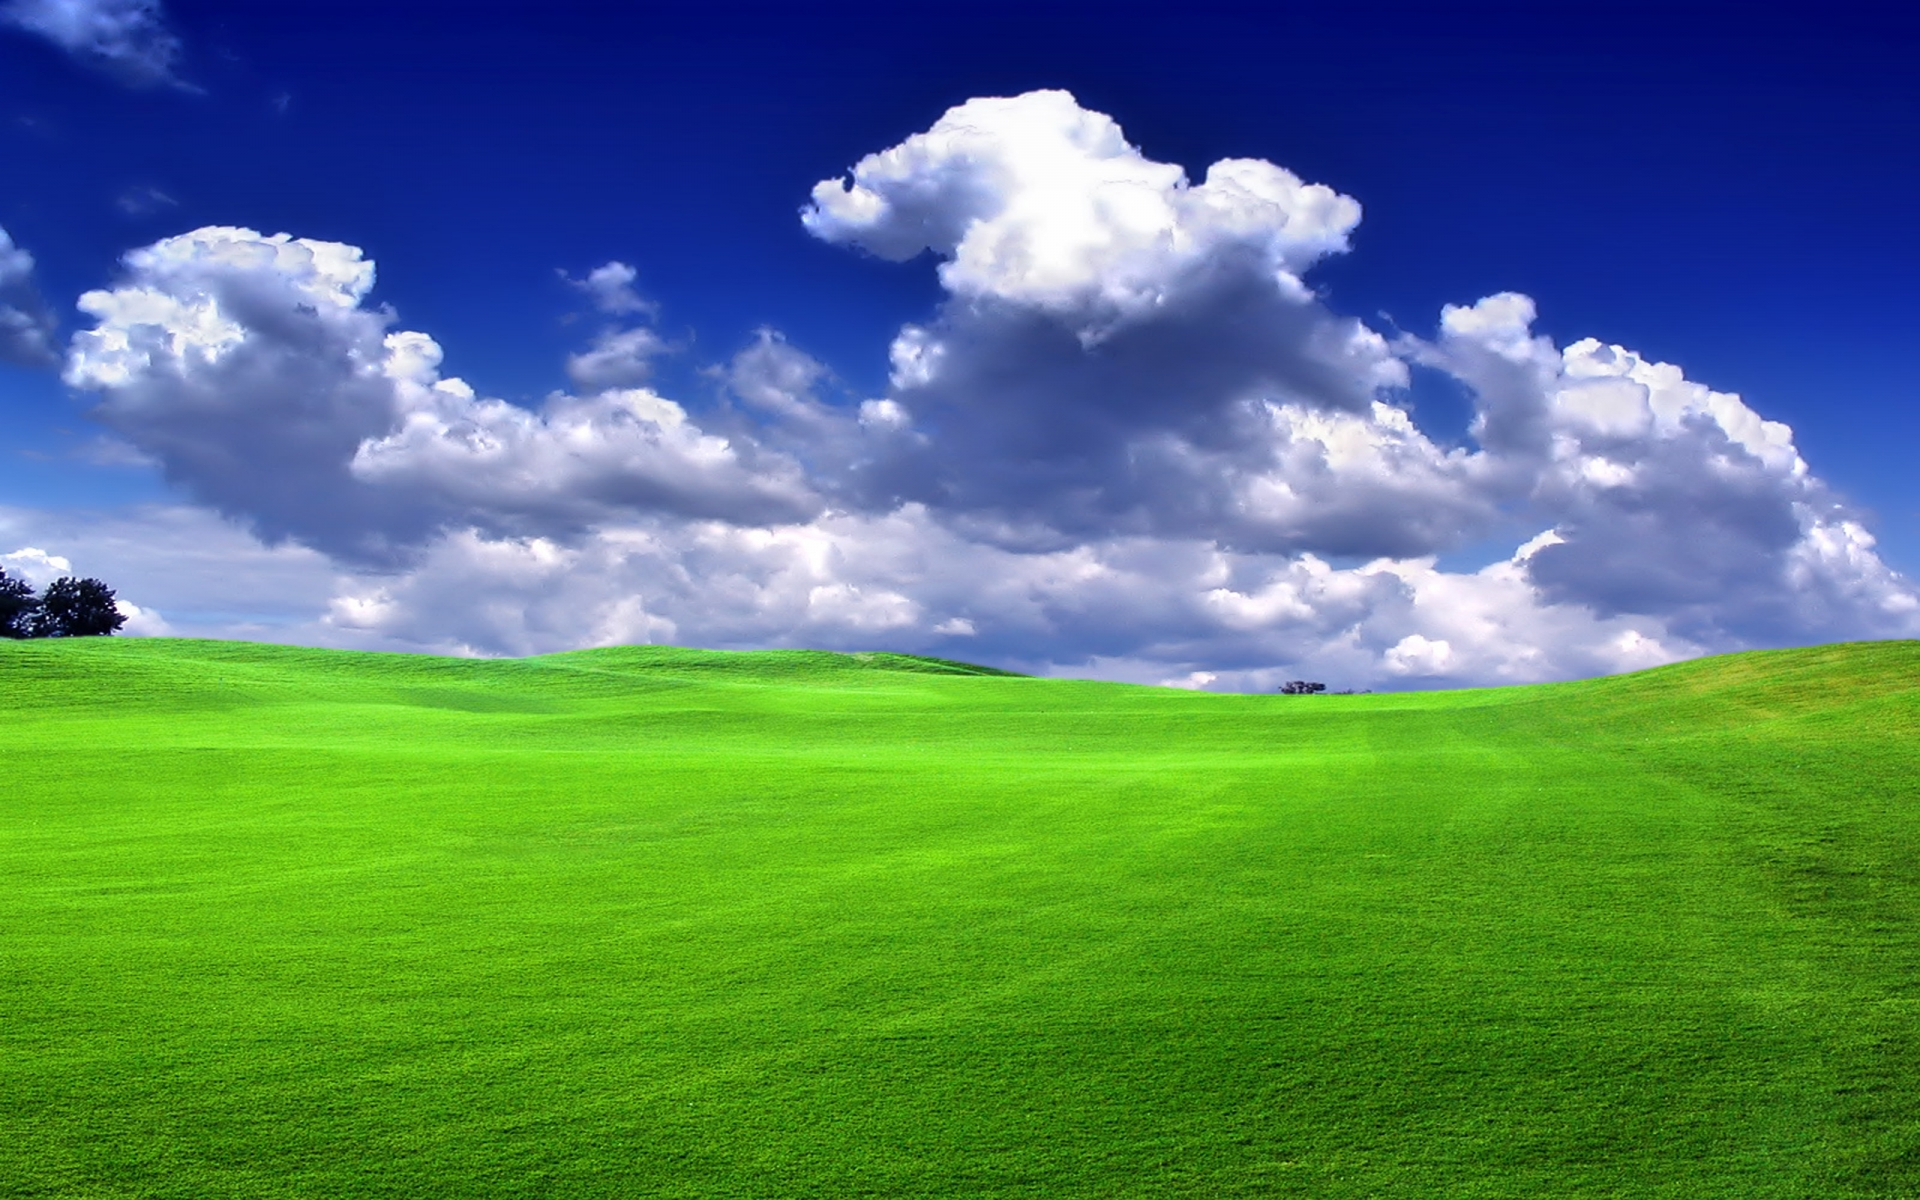 grass images Grass & nature view HD wallpaper and background photos ...